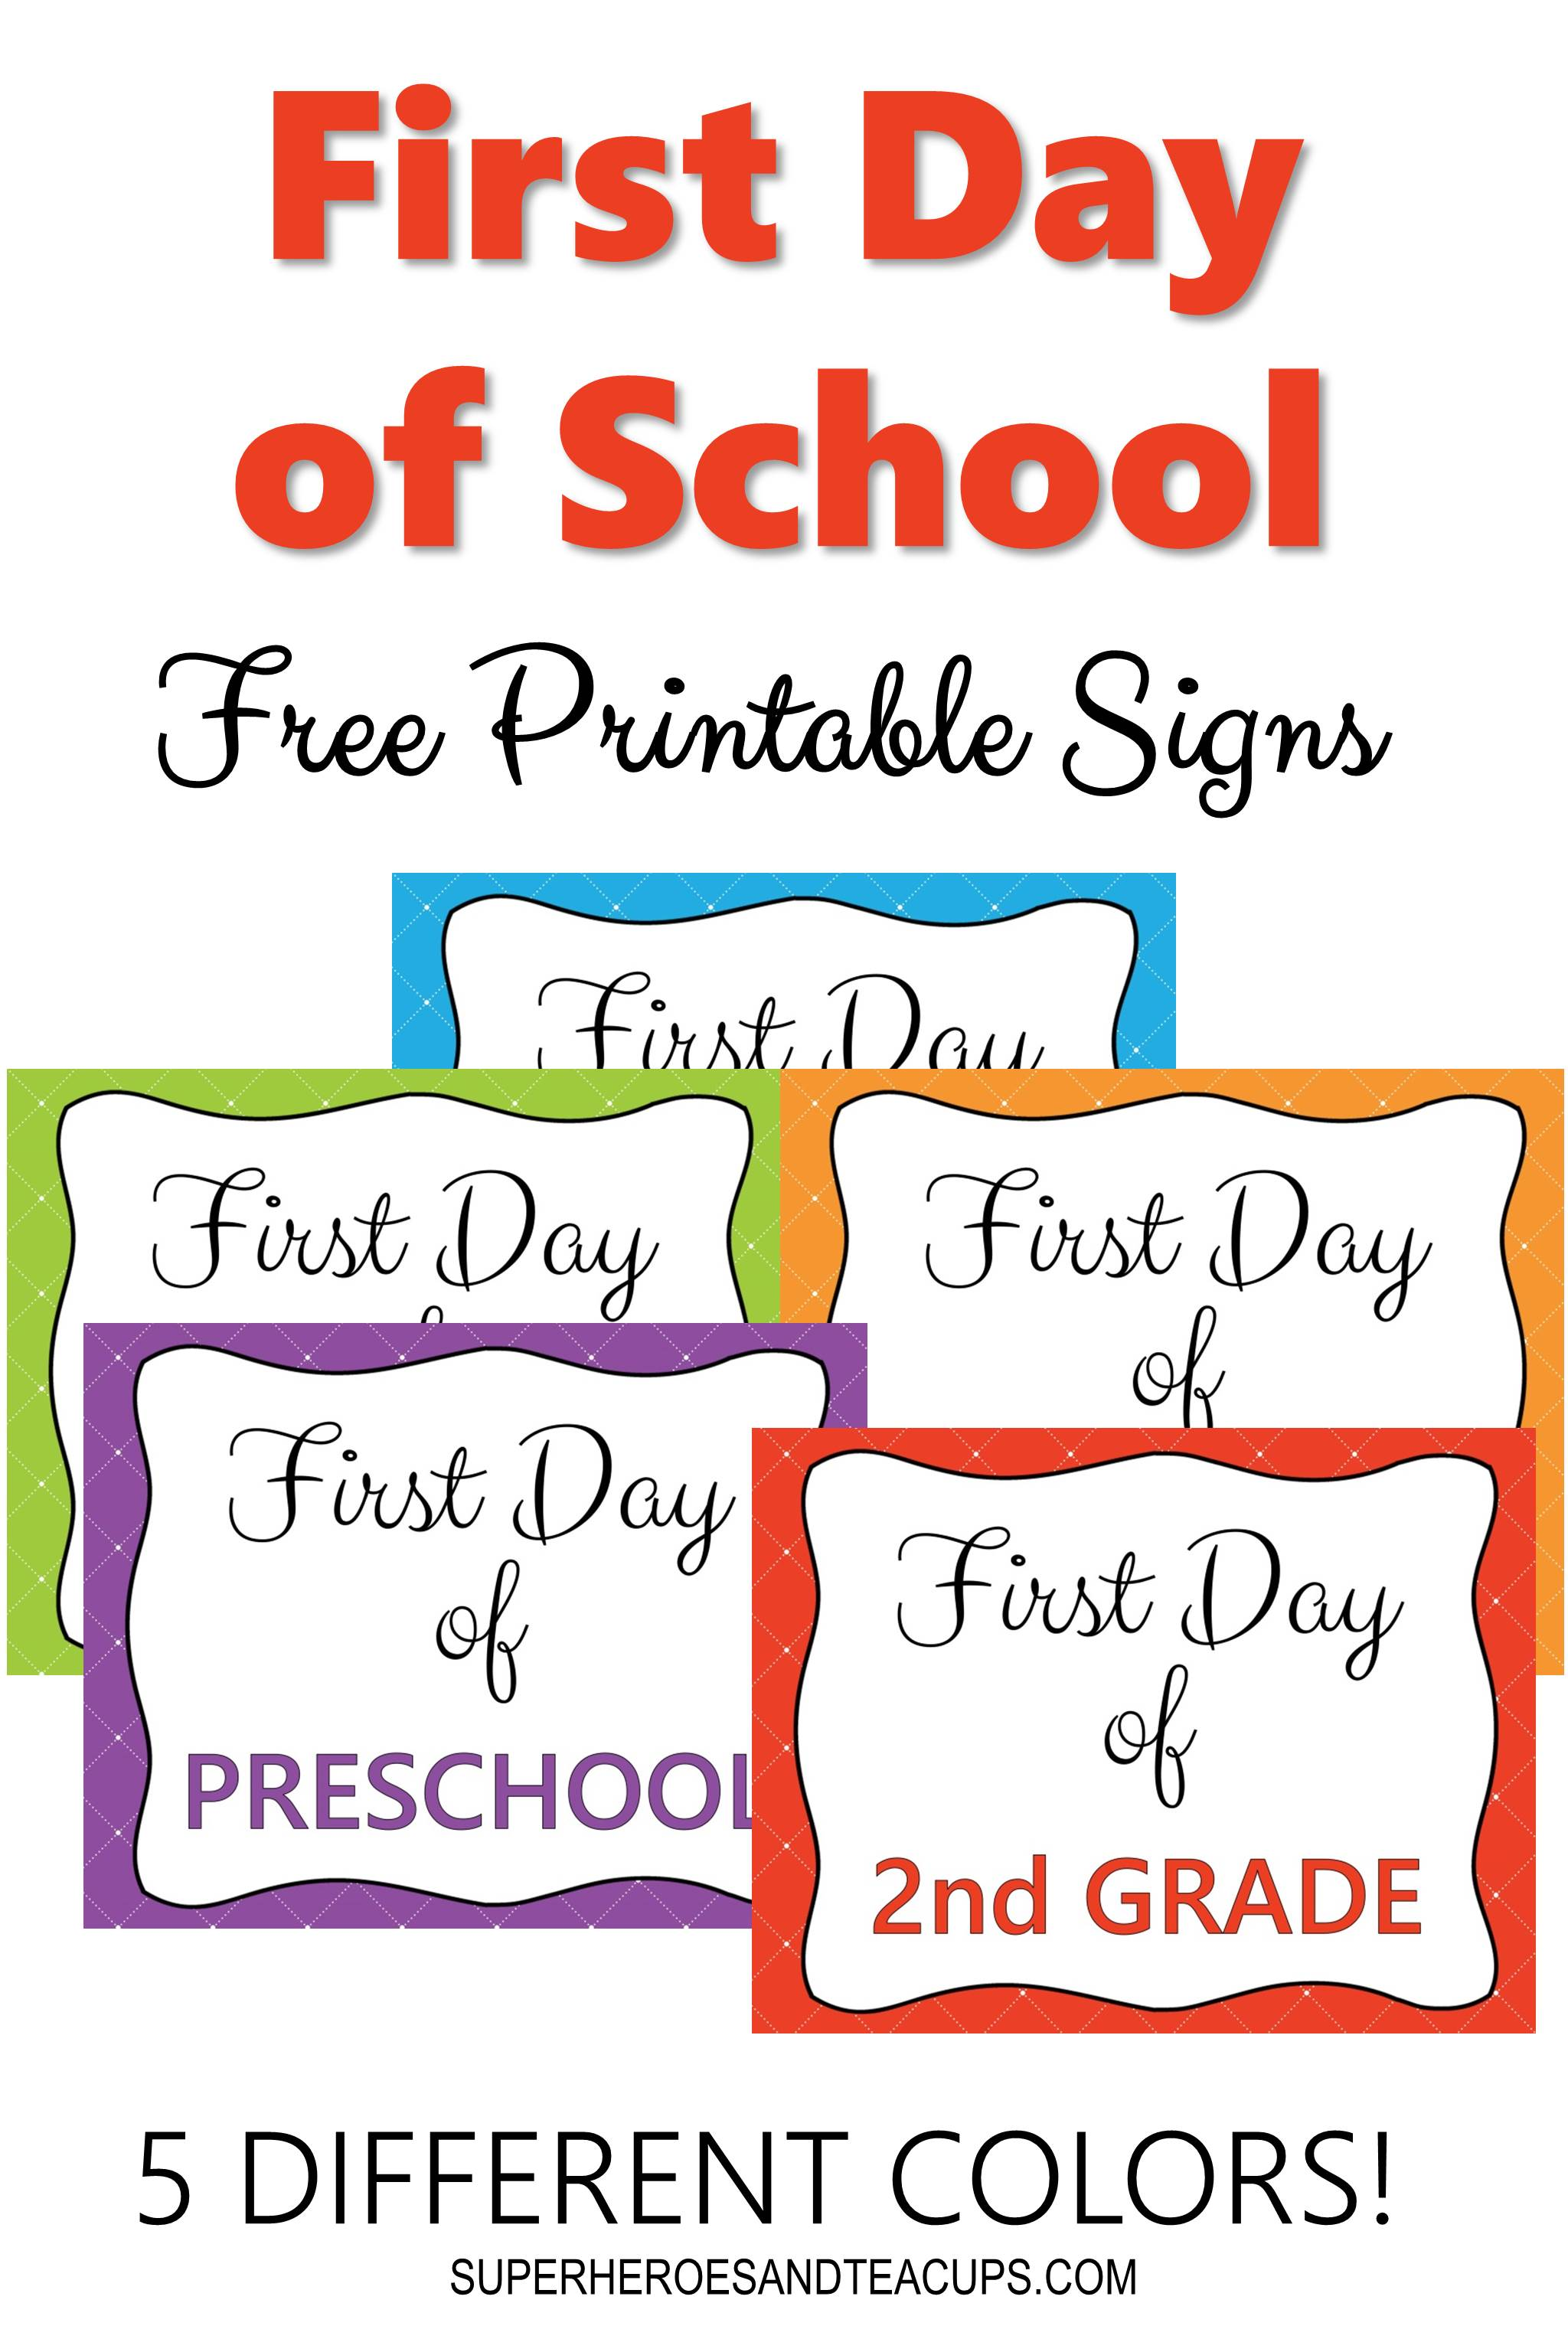 graphic regarding First Day of School Printable named Initial Working day of Higher education Indications No cost Printable for Just about every Quality